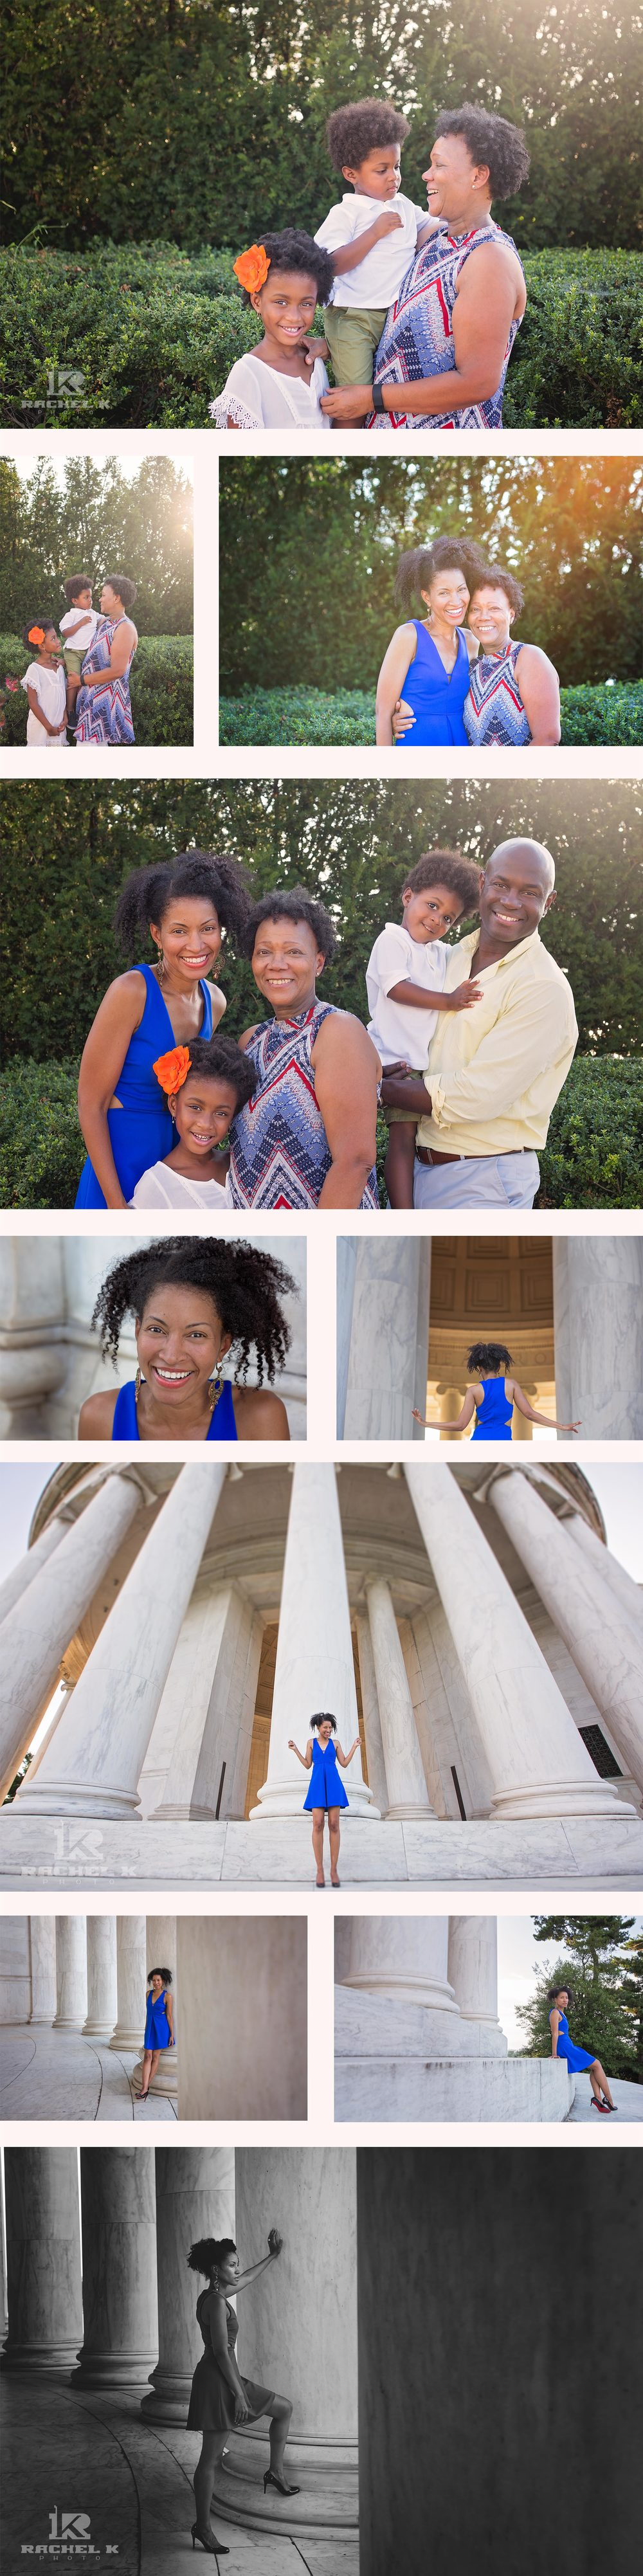 Jefferson memorial DC family photography session by Rachel K Photo